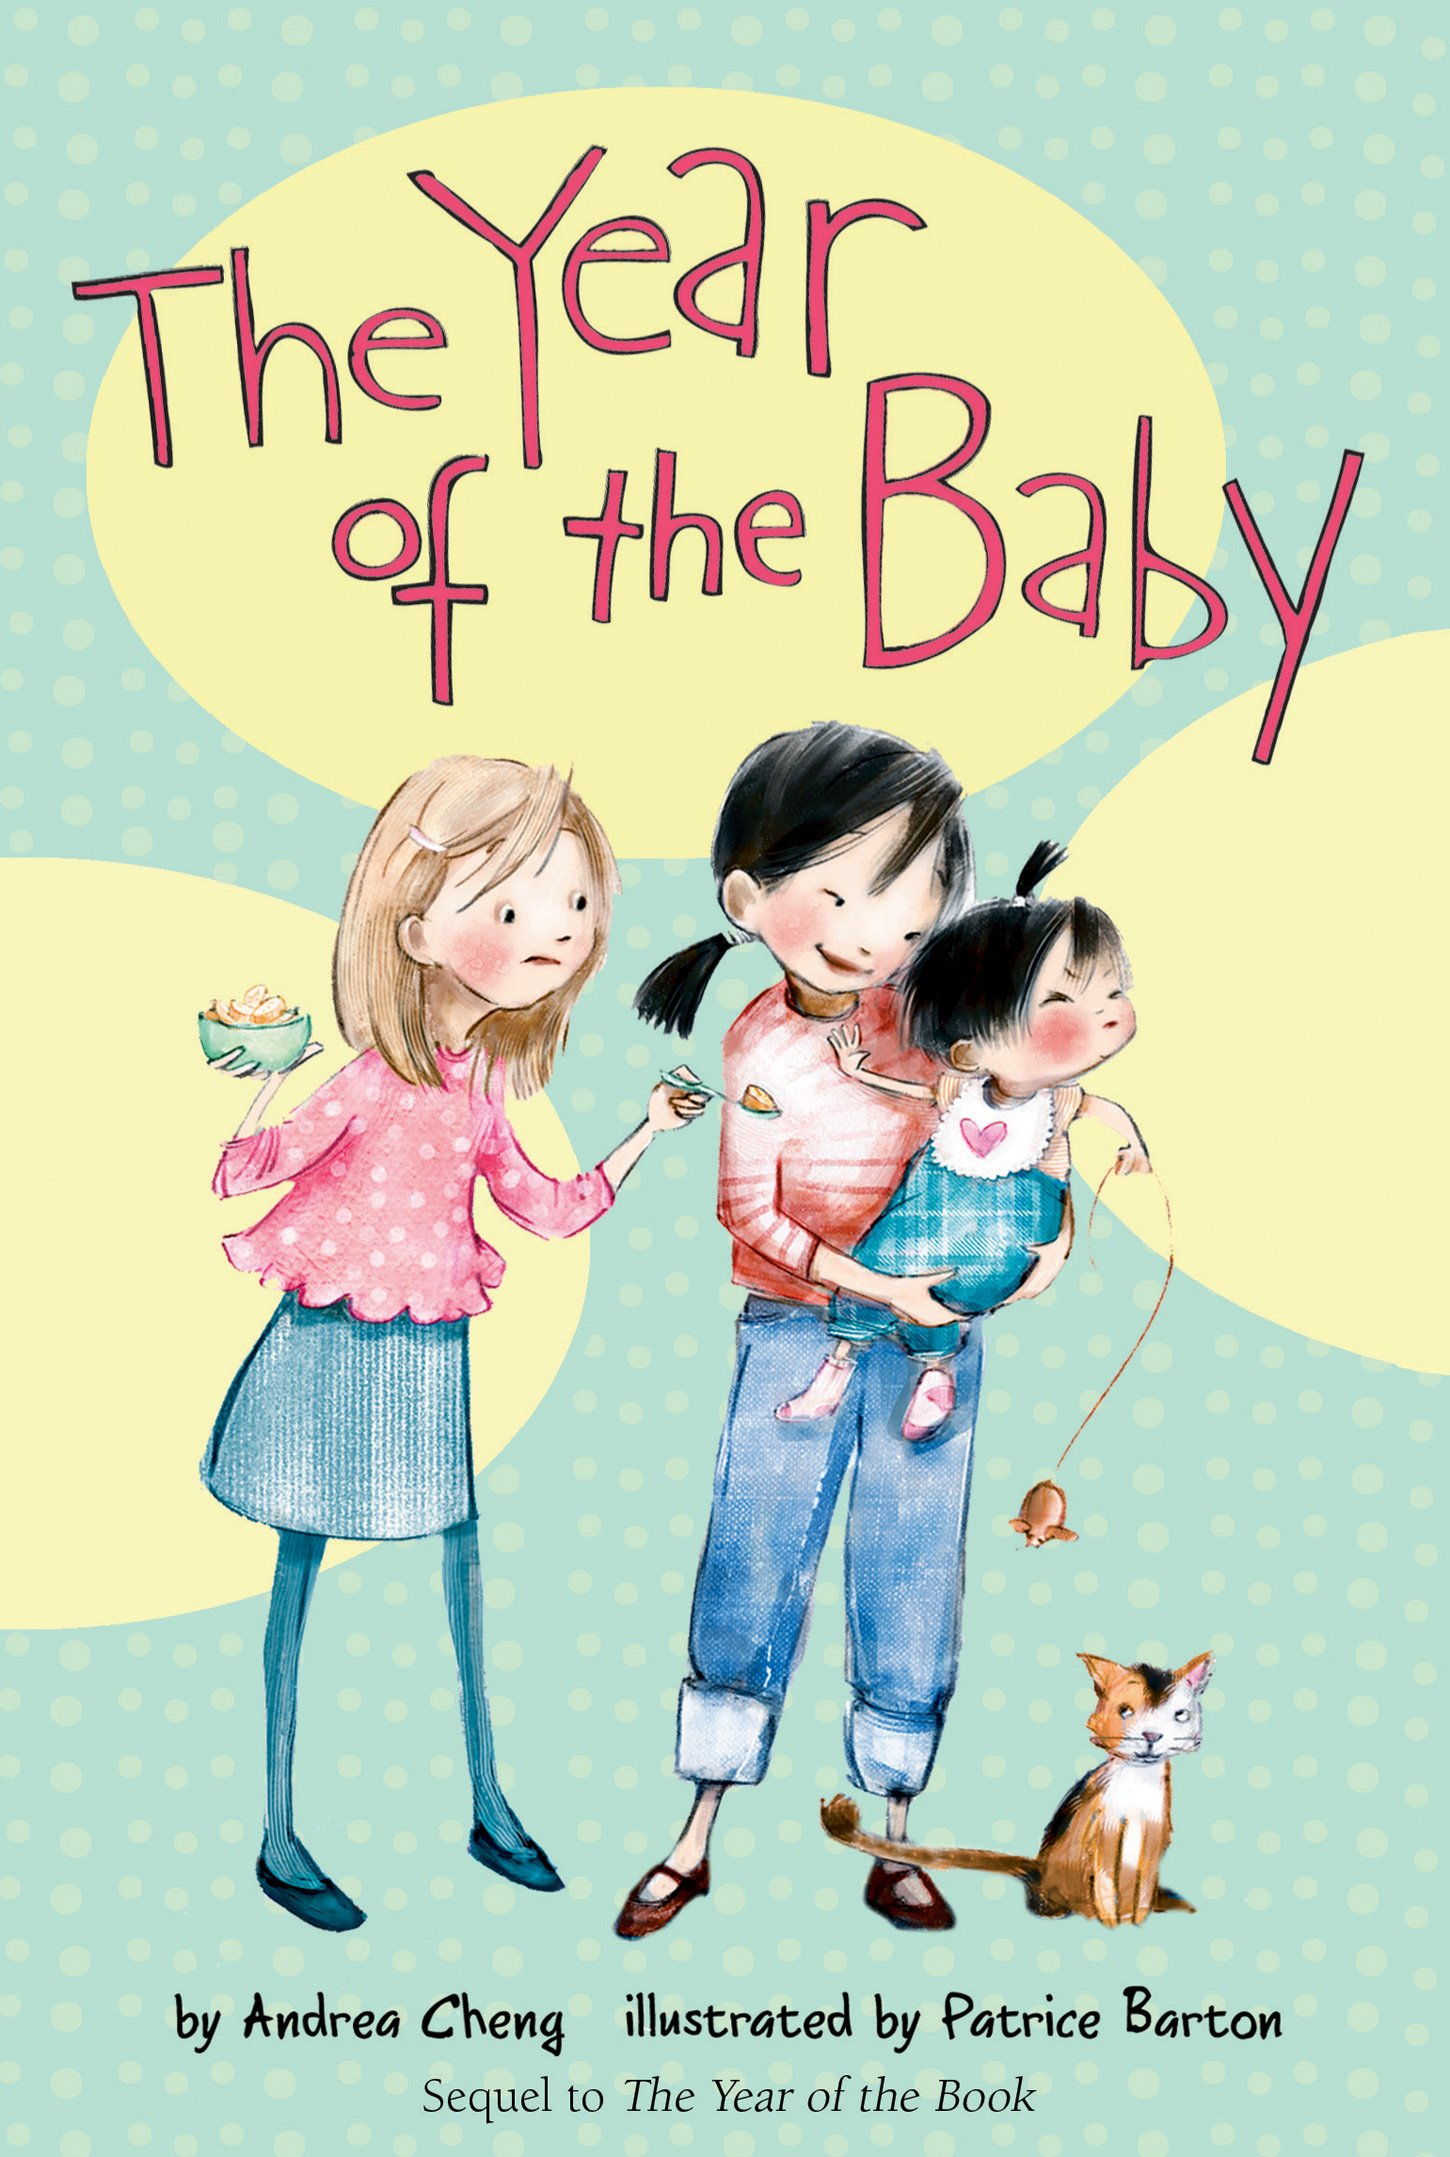 The Year of the Baby An Anna Wang novel Andrea Cheng Patrice